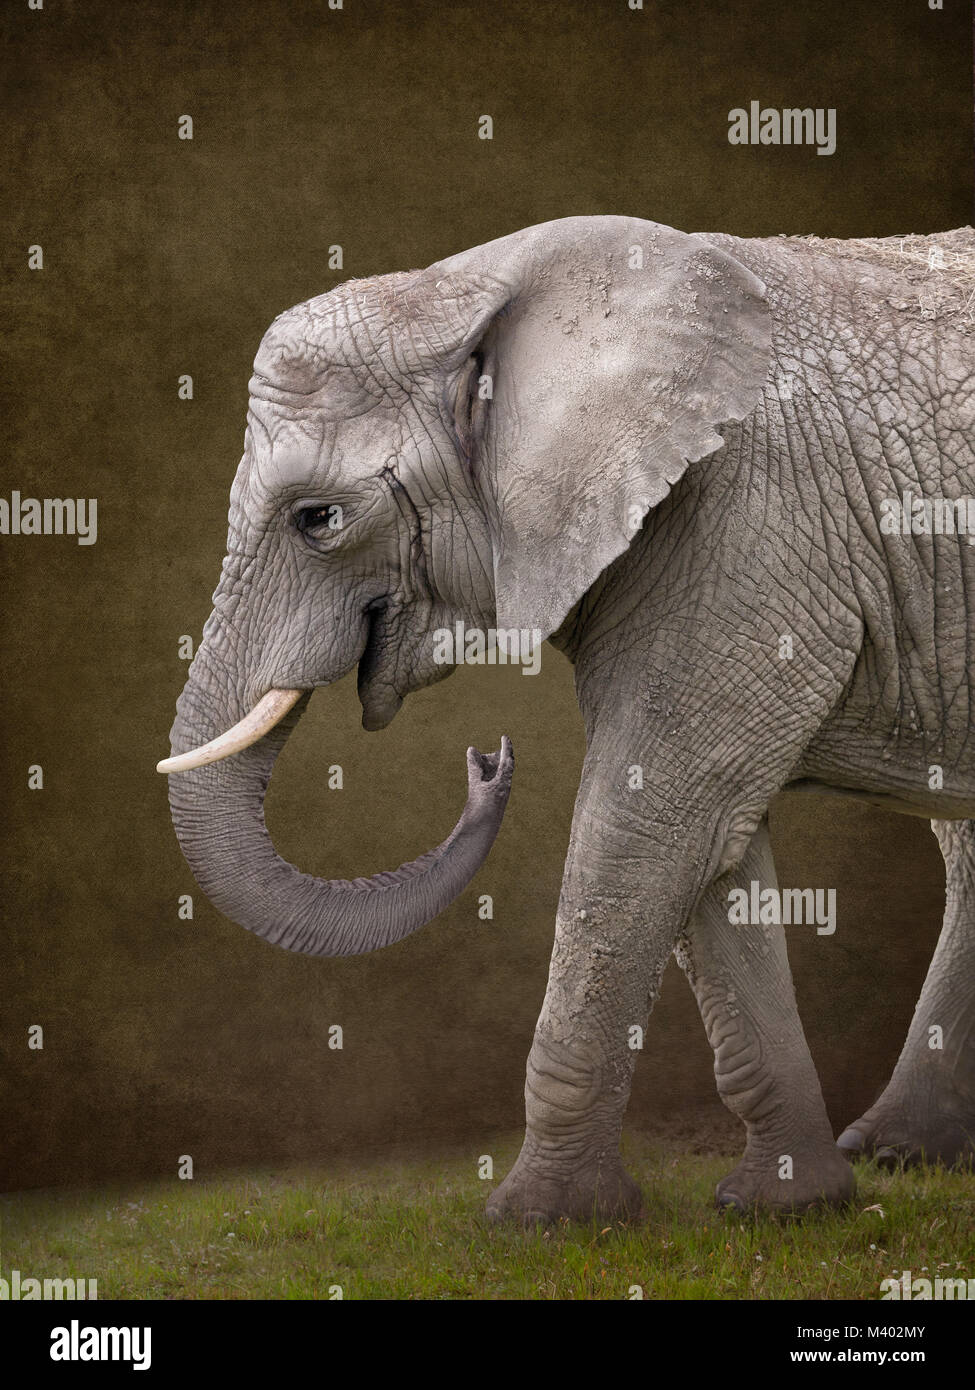 Elephant for digital composites suitable for baby photoshop - Stock Image